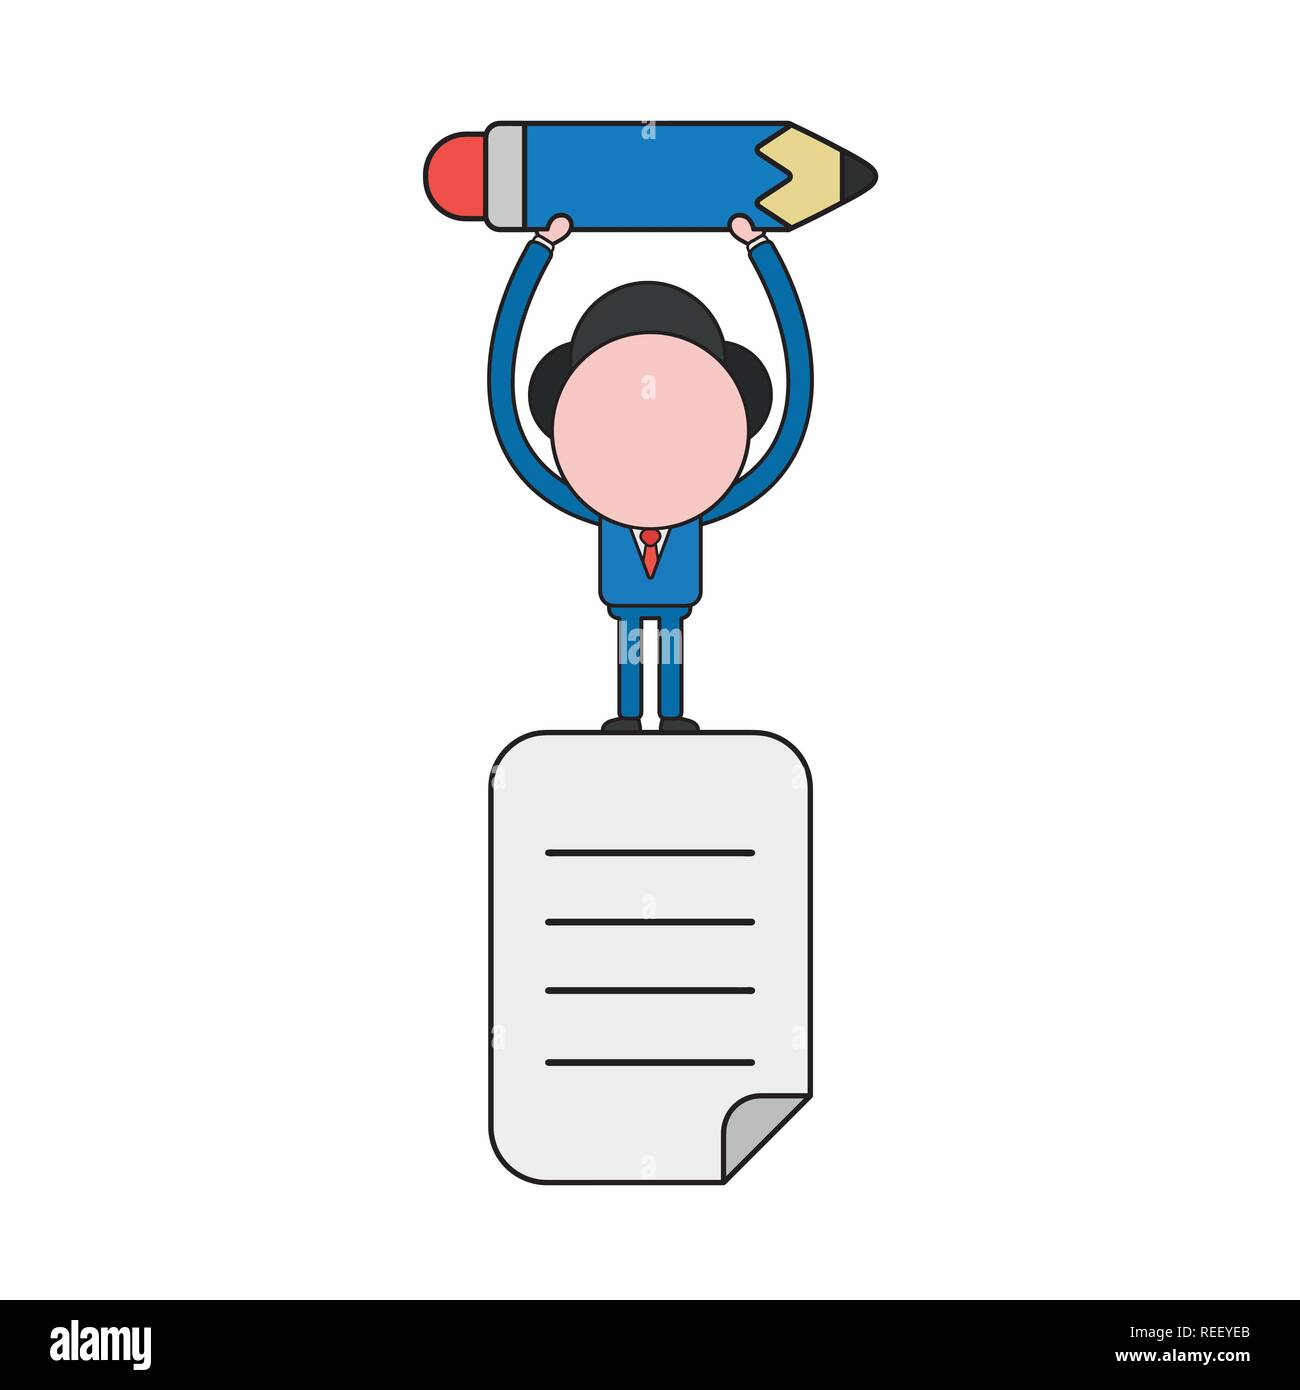 Vector illustration businessman character standing on written paper and holding up pencil. Color and black outlines. - Stock Vector